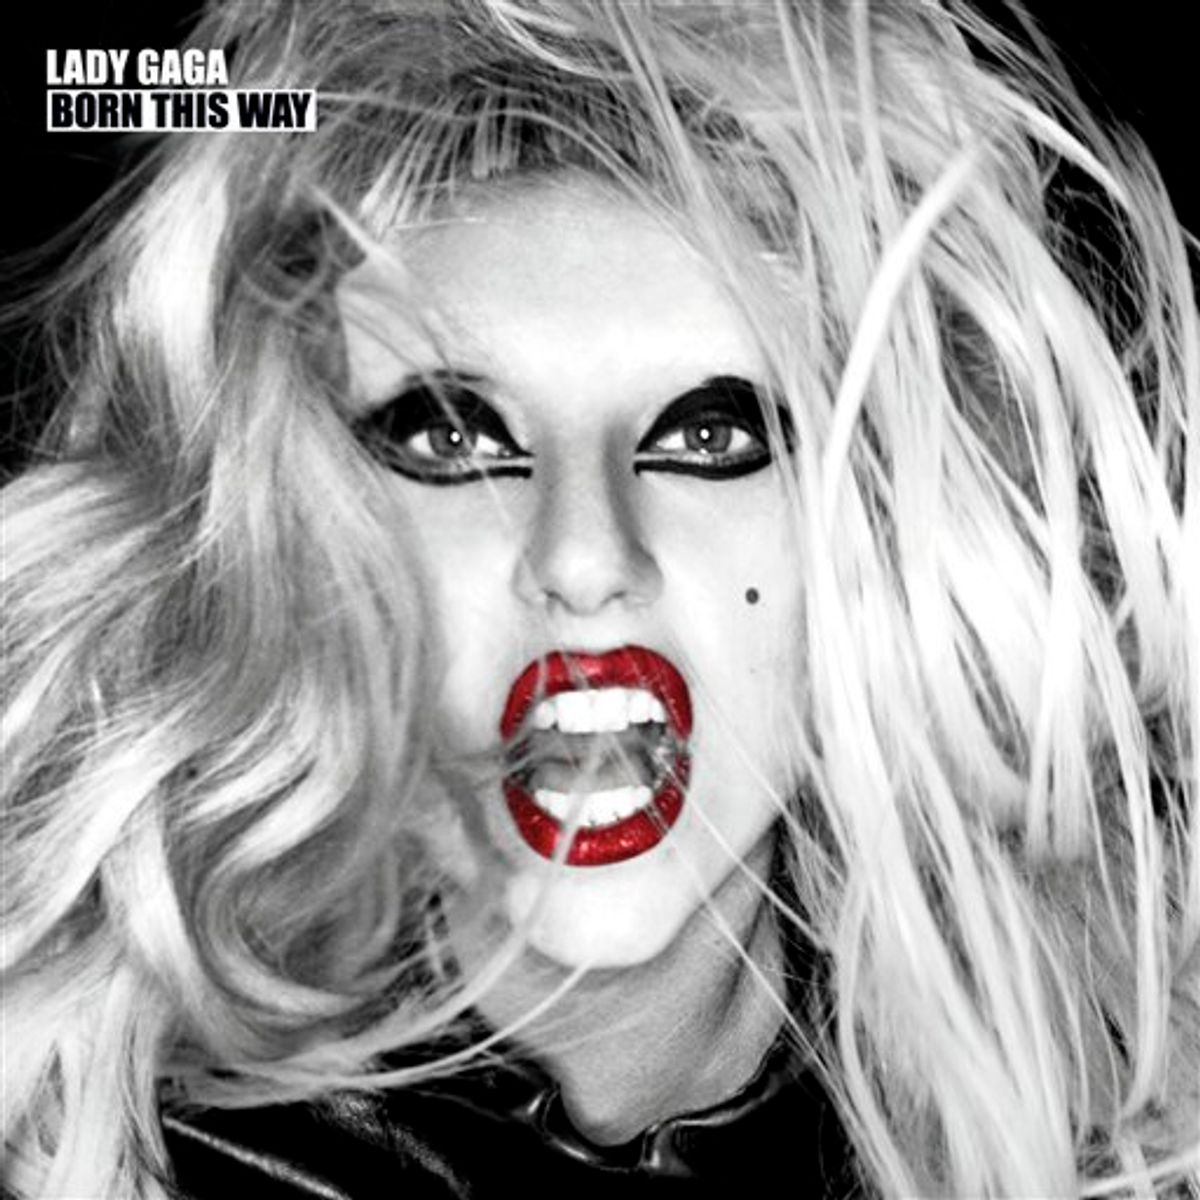 """FILE - In this file CD cover image released by Interscope Records, the latest release by Lady Gaga, """"Born This Way"""", is shown. Amazon experienced a high volume of traffic that caused delays for those downloading the album — echoing a posting on the album's product page on Amazon.com. (AP Photo/Interscope Records, File) (AP)"""